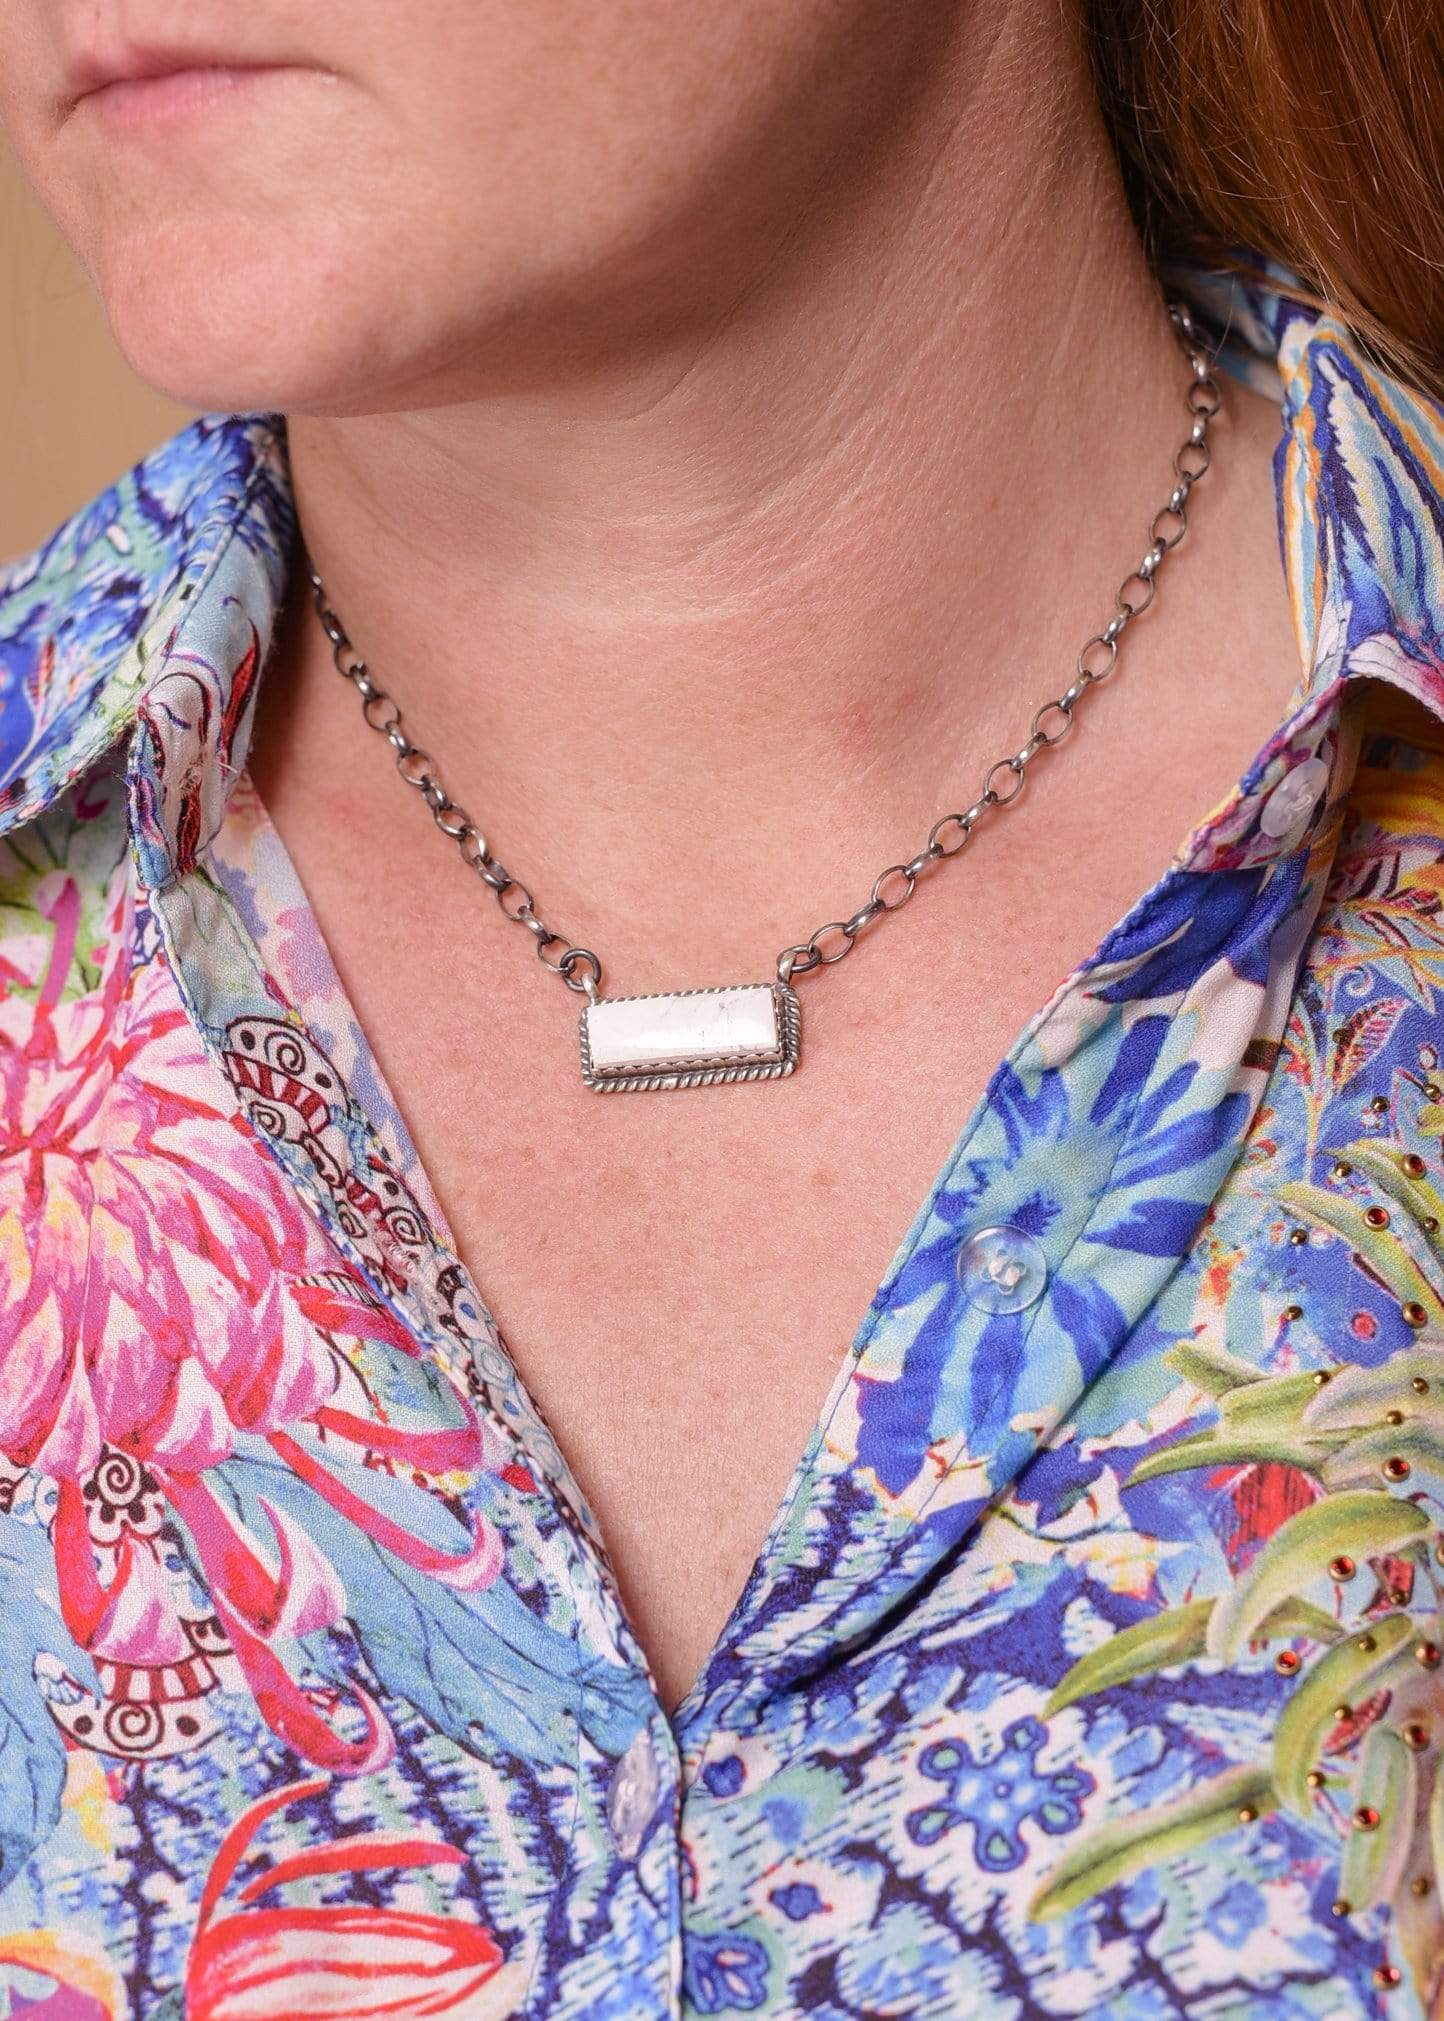 Accessorize In Style Sterling Necklaces White Buffalo Bar Necklace - Large